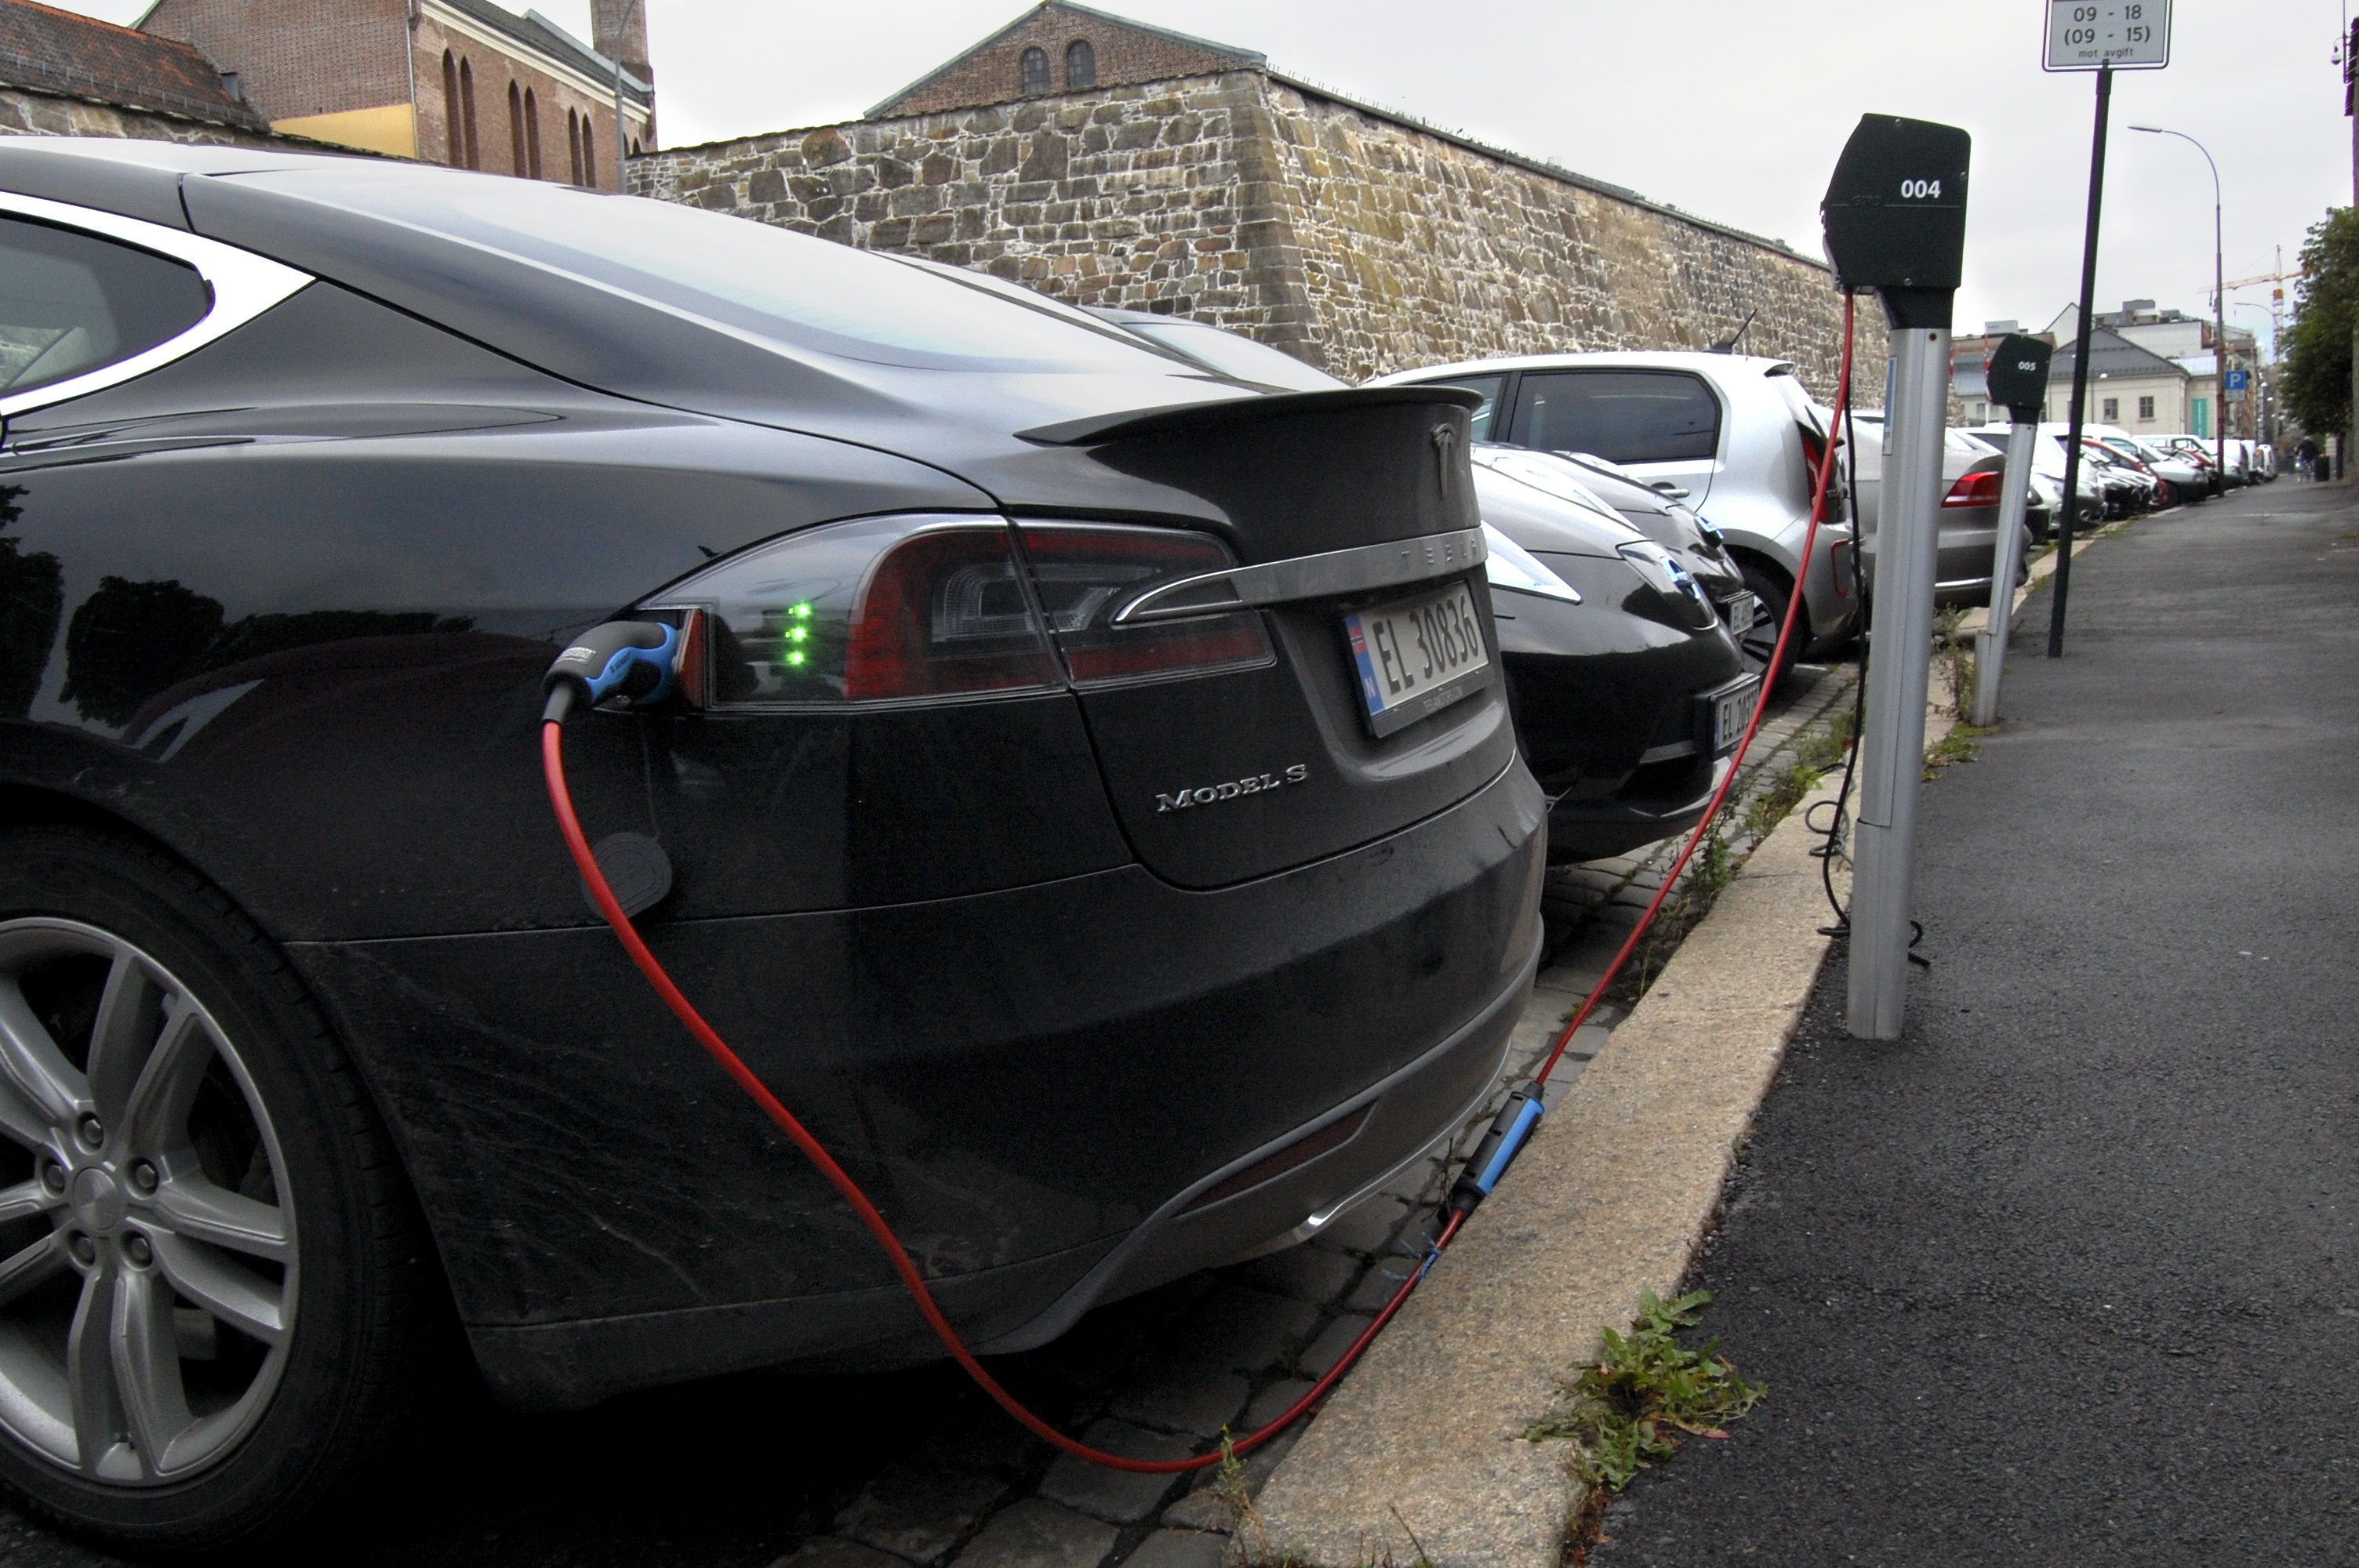 Cars are seen charging in free parking spaces for electric cars in central Oslo on Aug. 19, 2014.